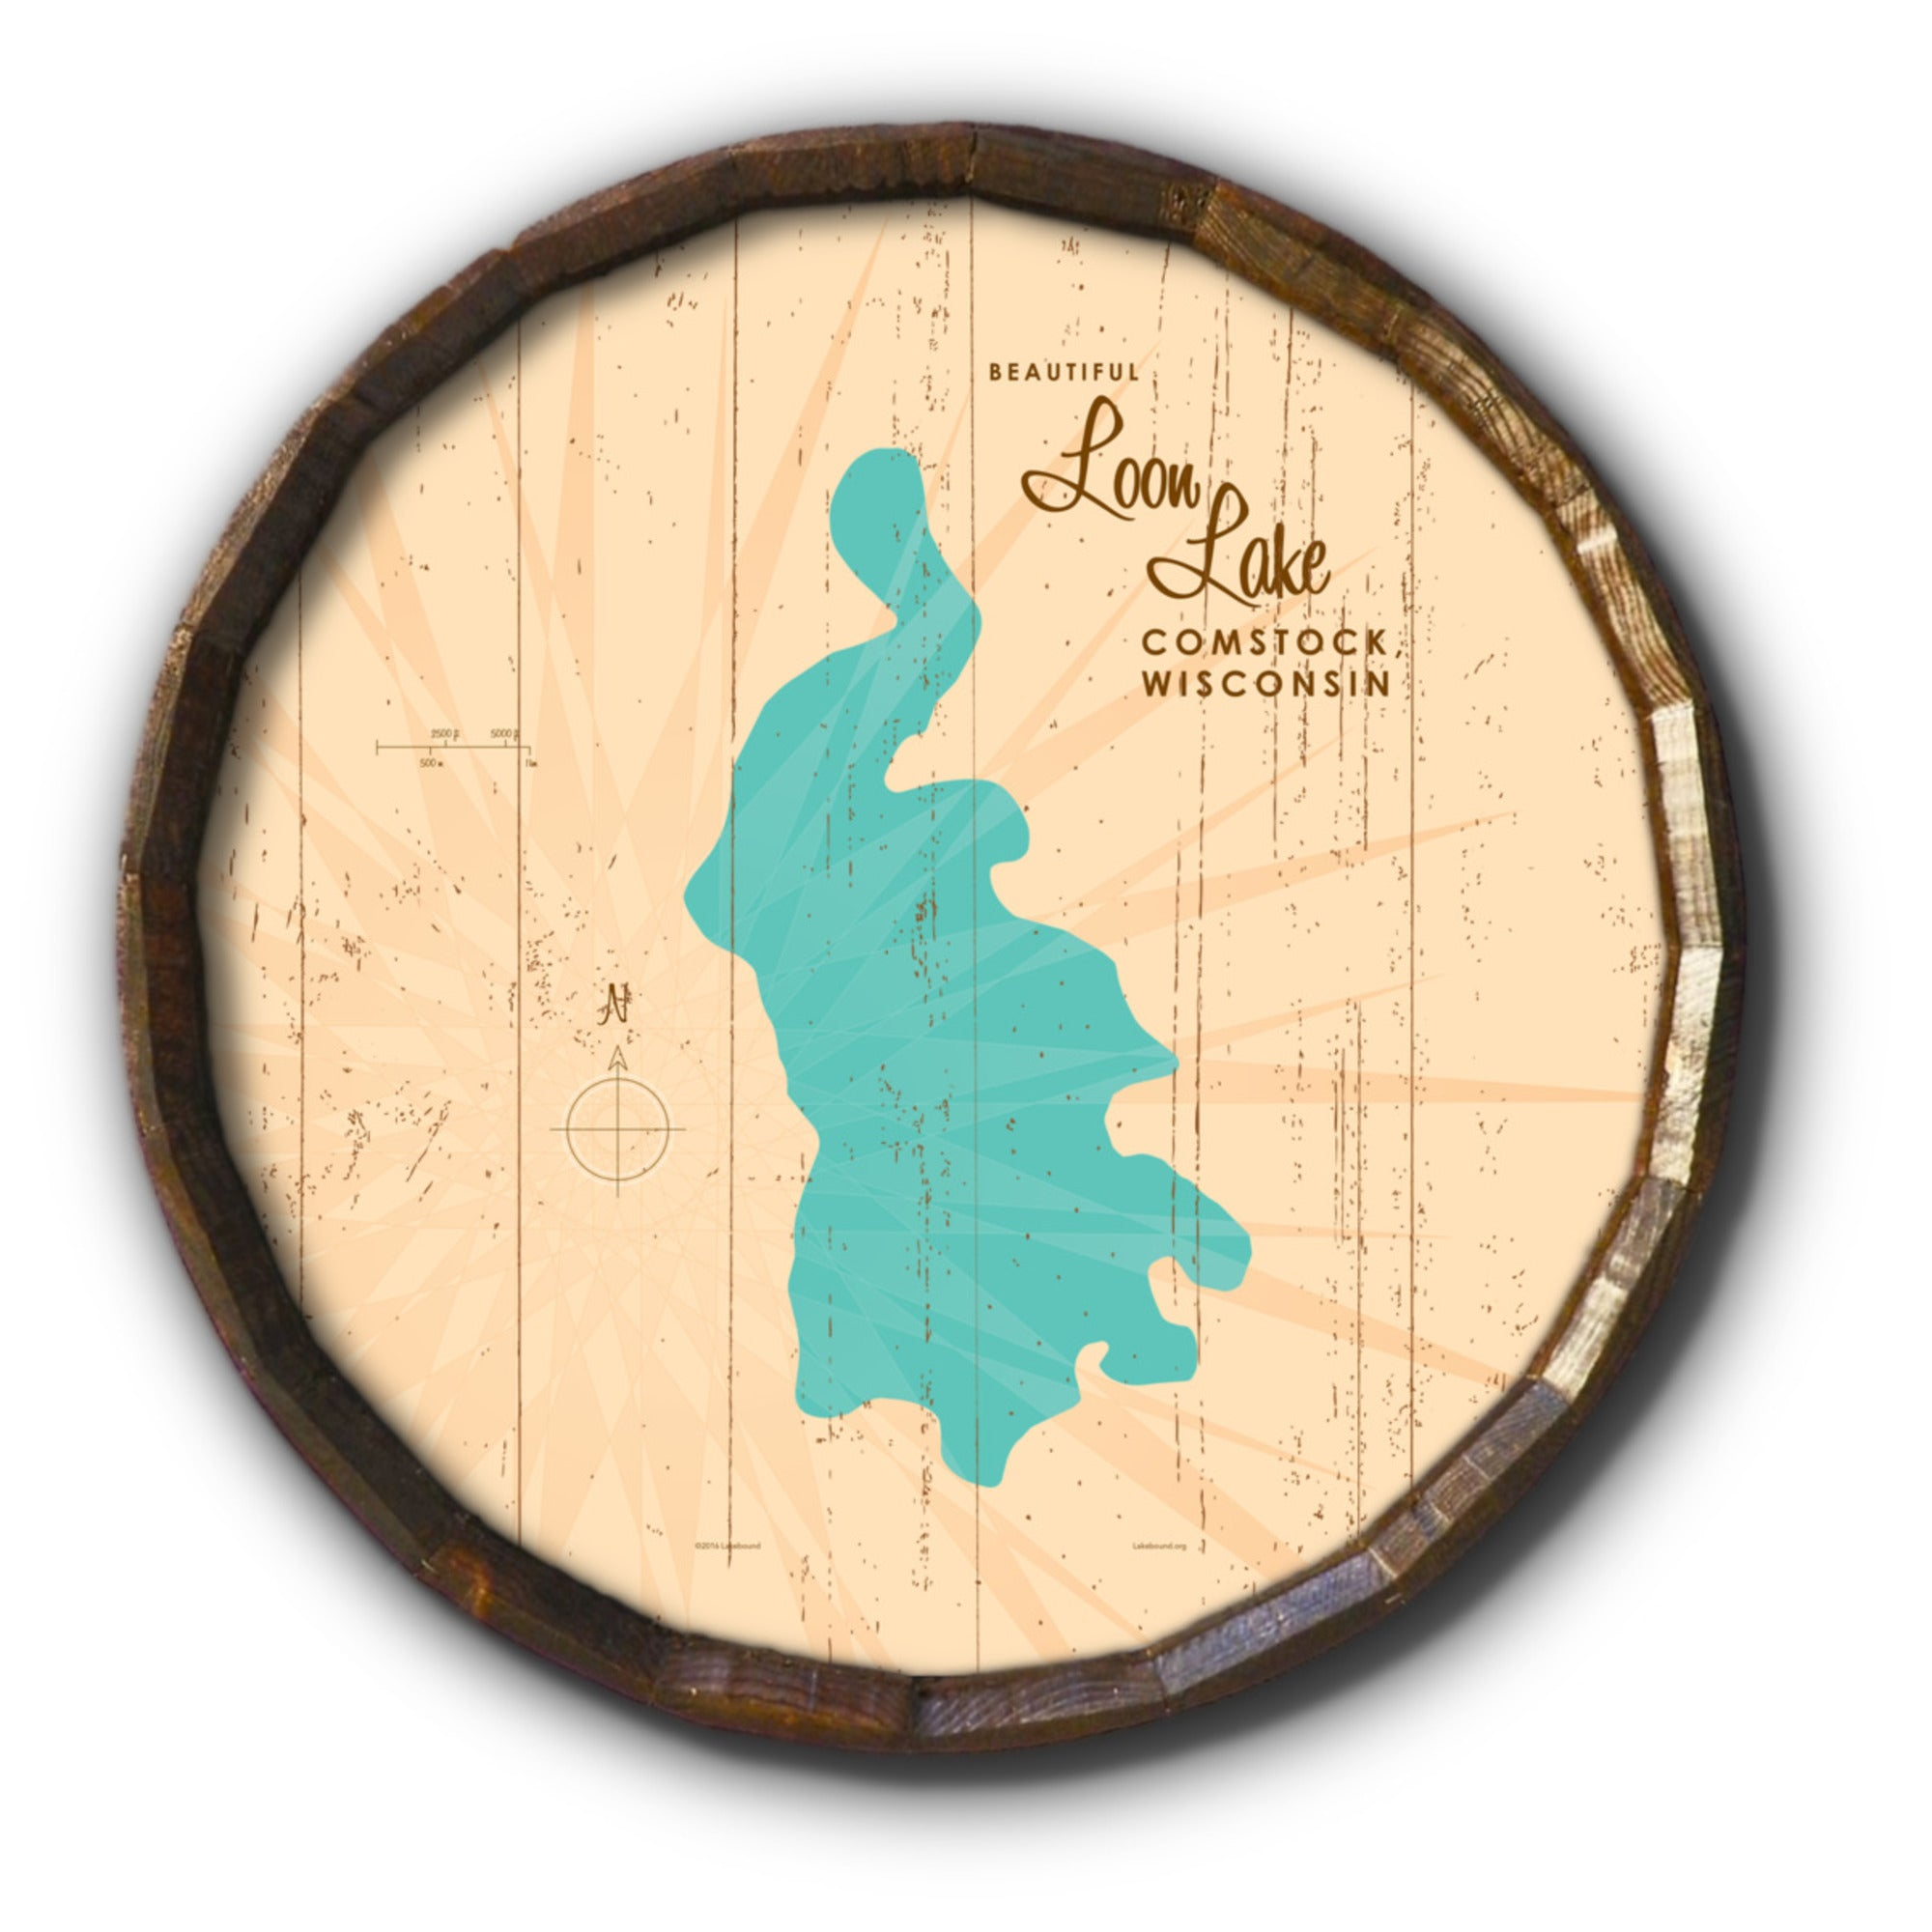 Loon Lake Wisconsin, Rustic Barrel End Map Art